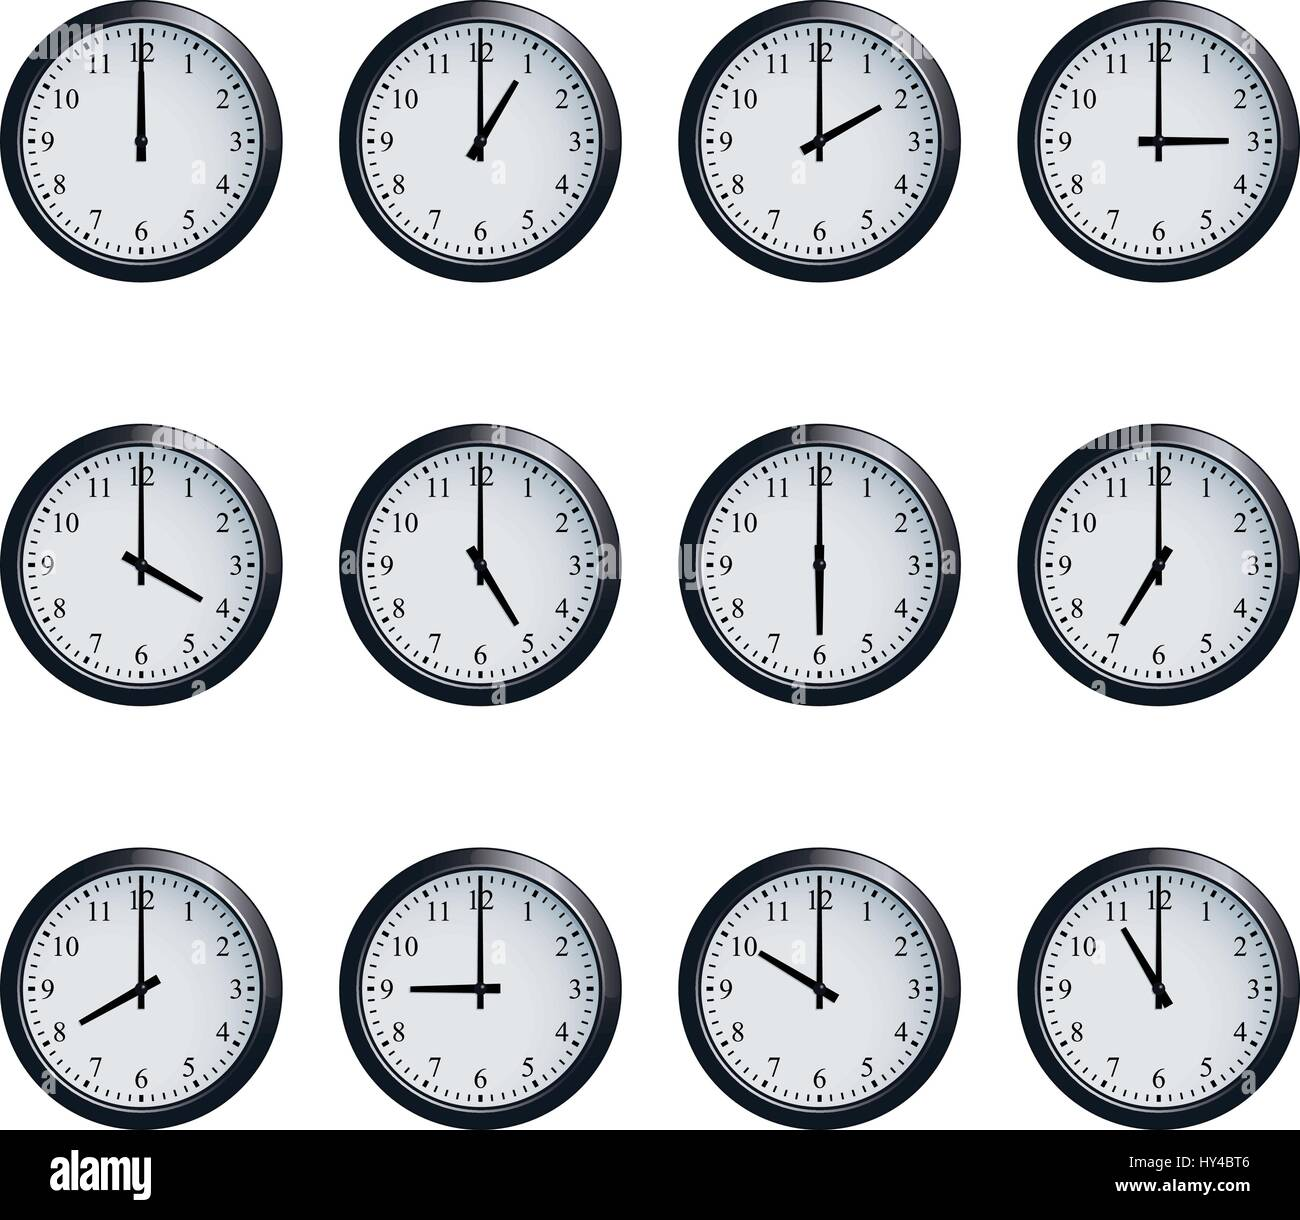 Clock set timed at each hour on white background - Stock Image